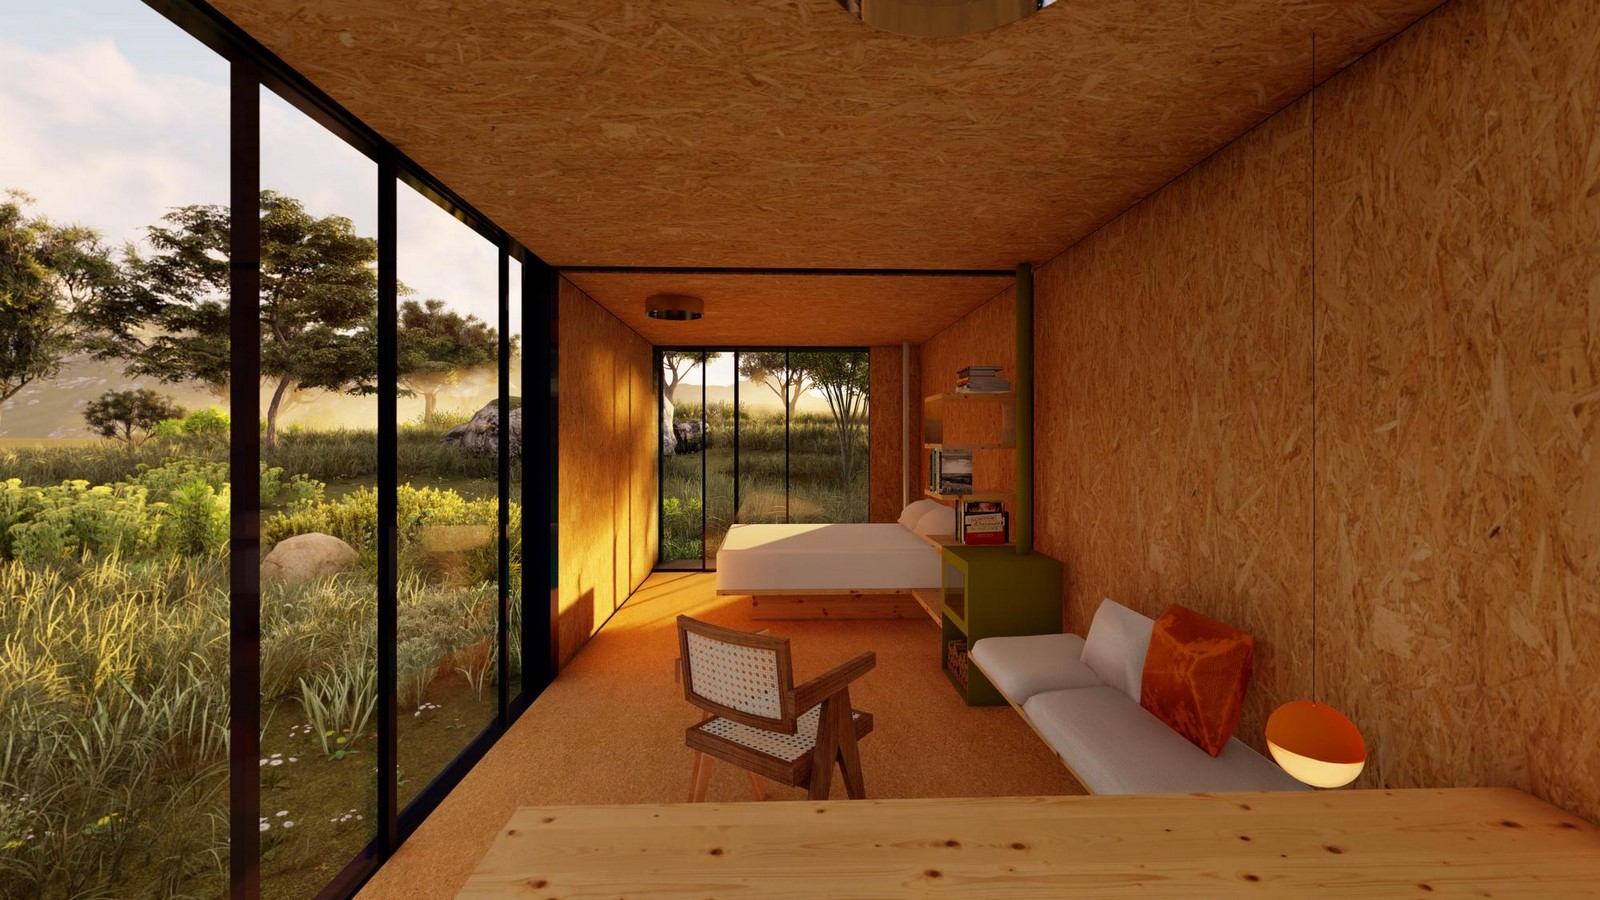 Two-Piece House With Corten Steel Addition In Toledo, Spain completed by DelaVegaCanolasso - Sheet3